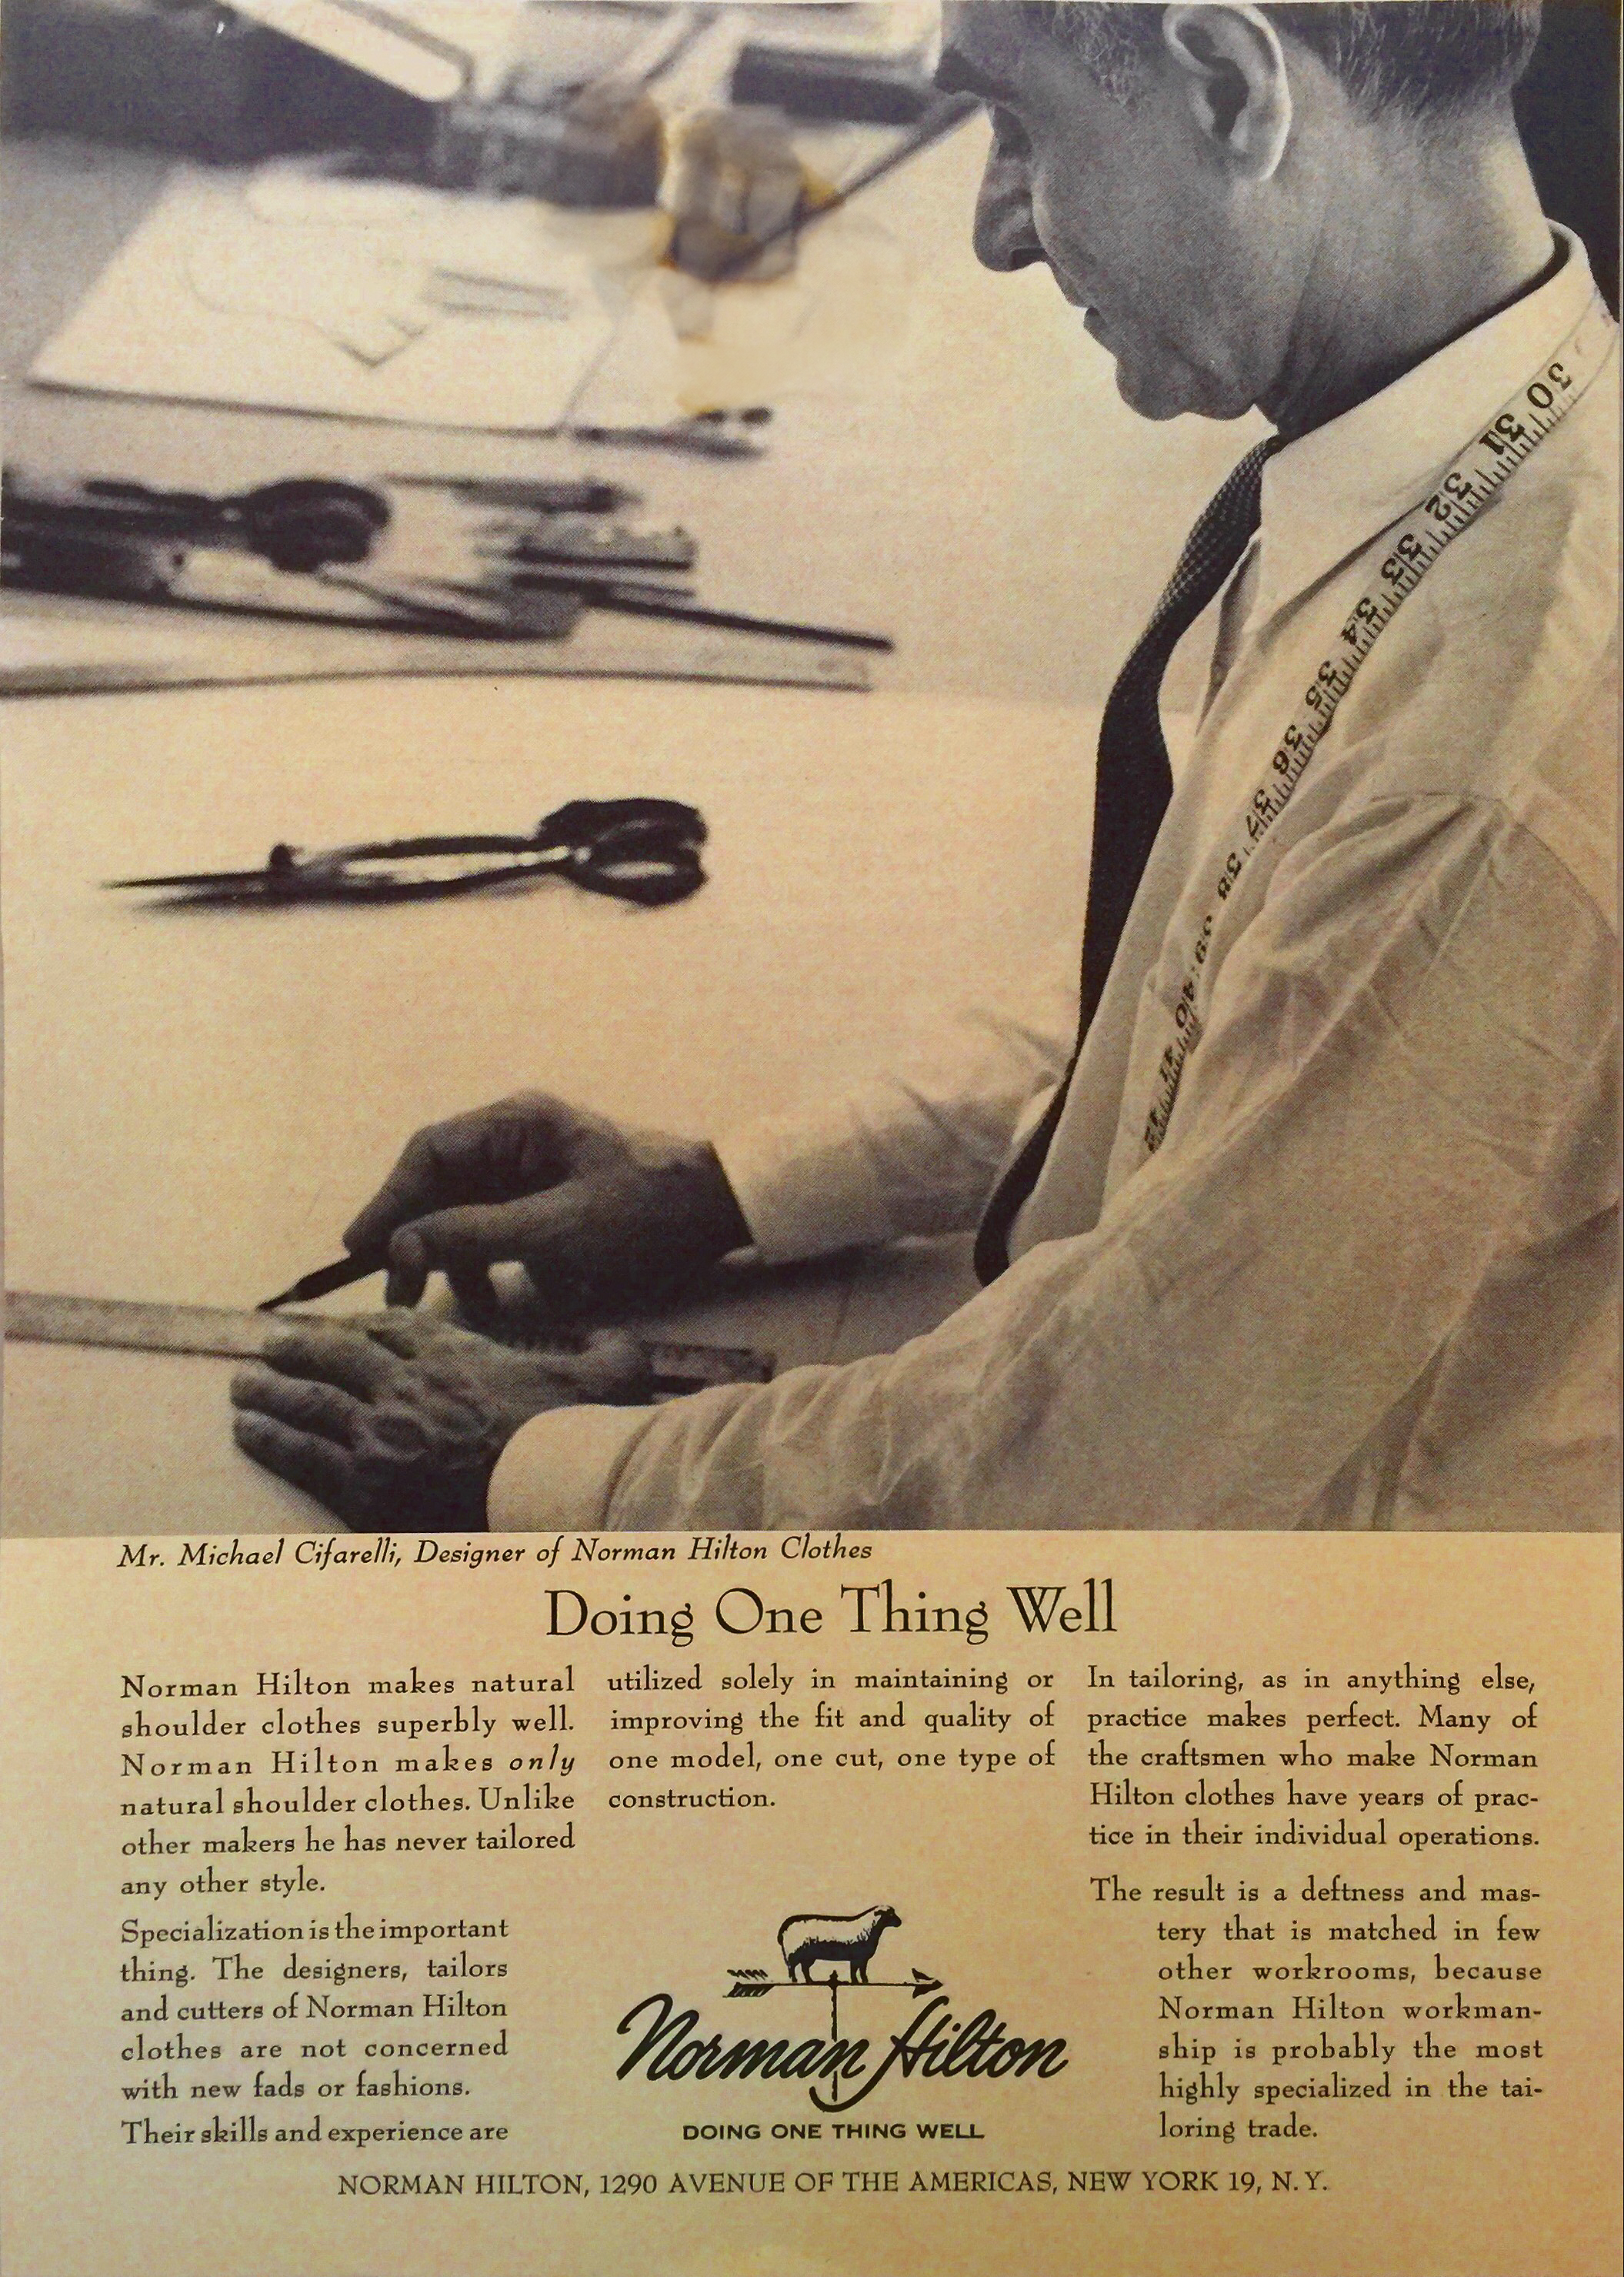 Michael Cifarelli - in a 1964 New Yorker ad.Still Doing One Thing, fifteen years later.